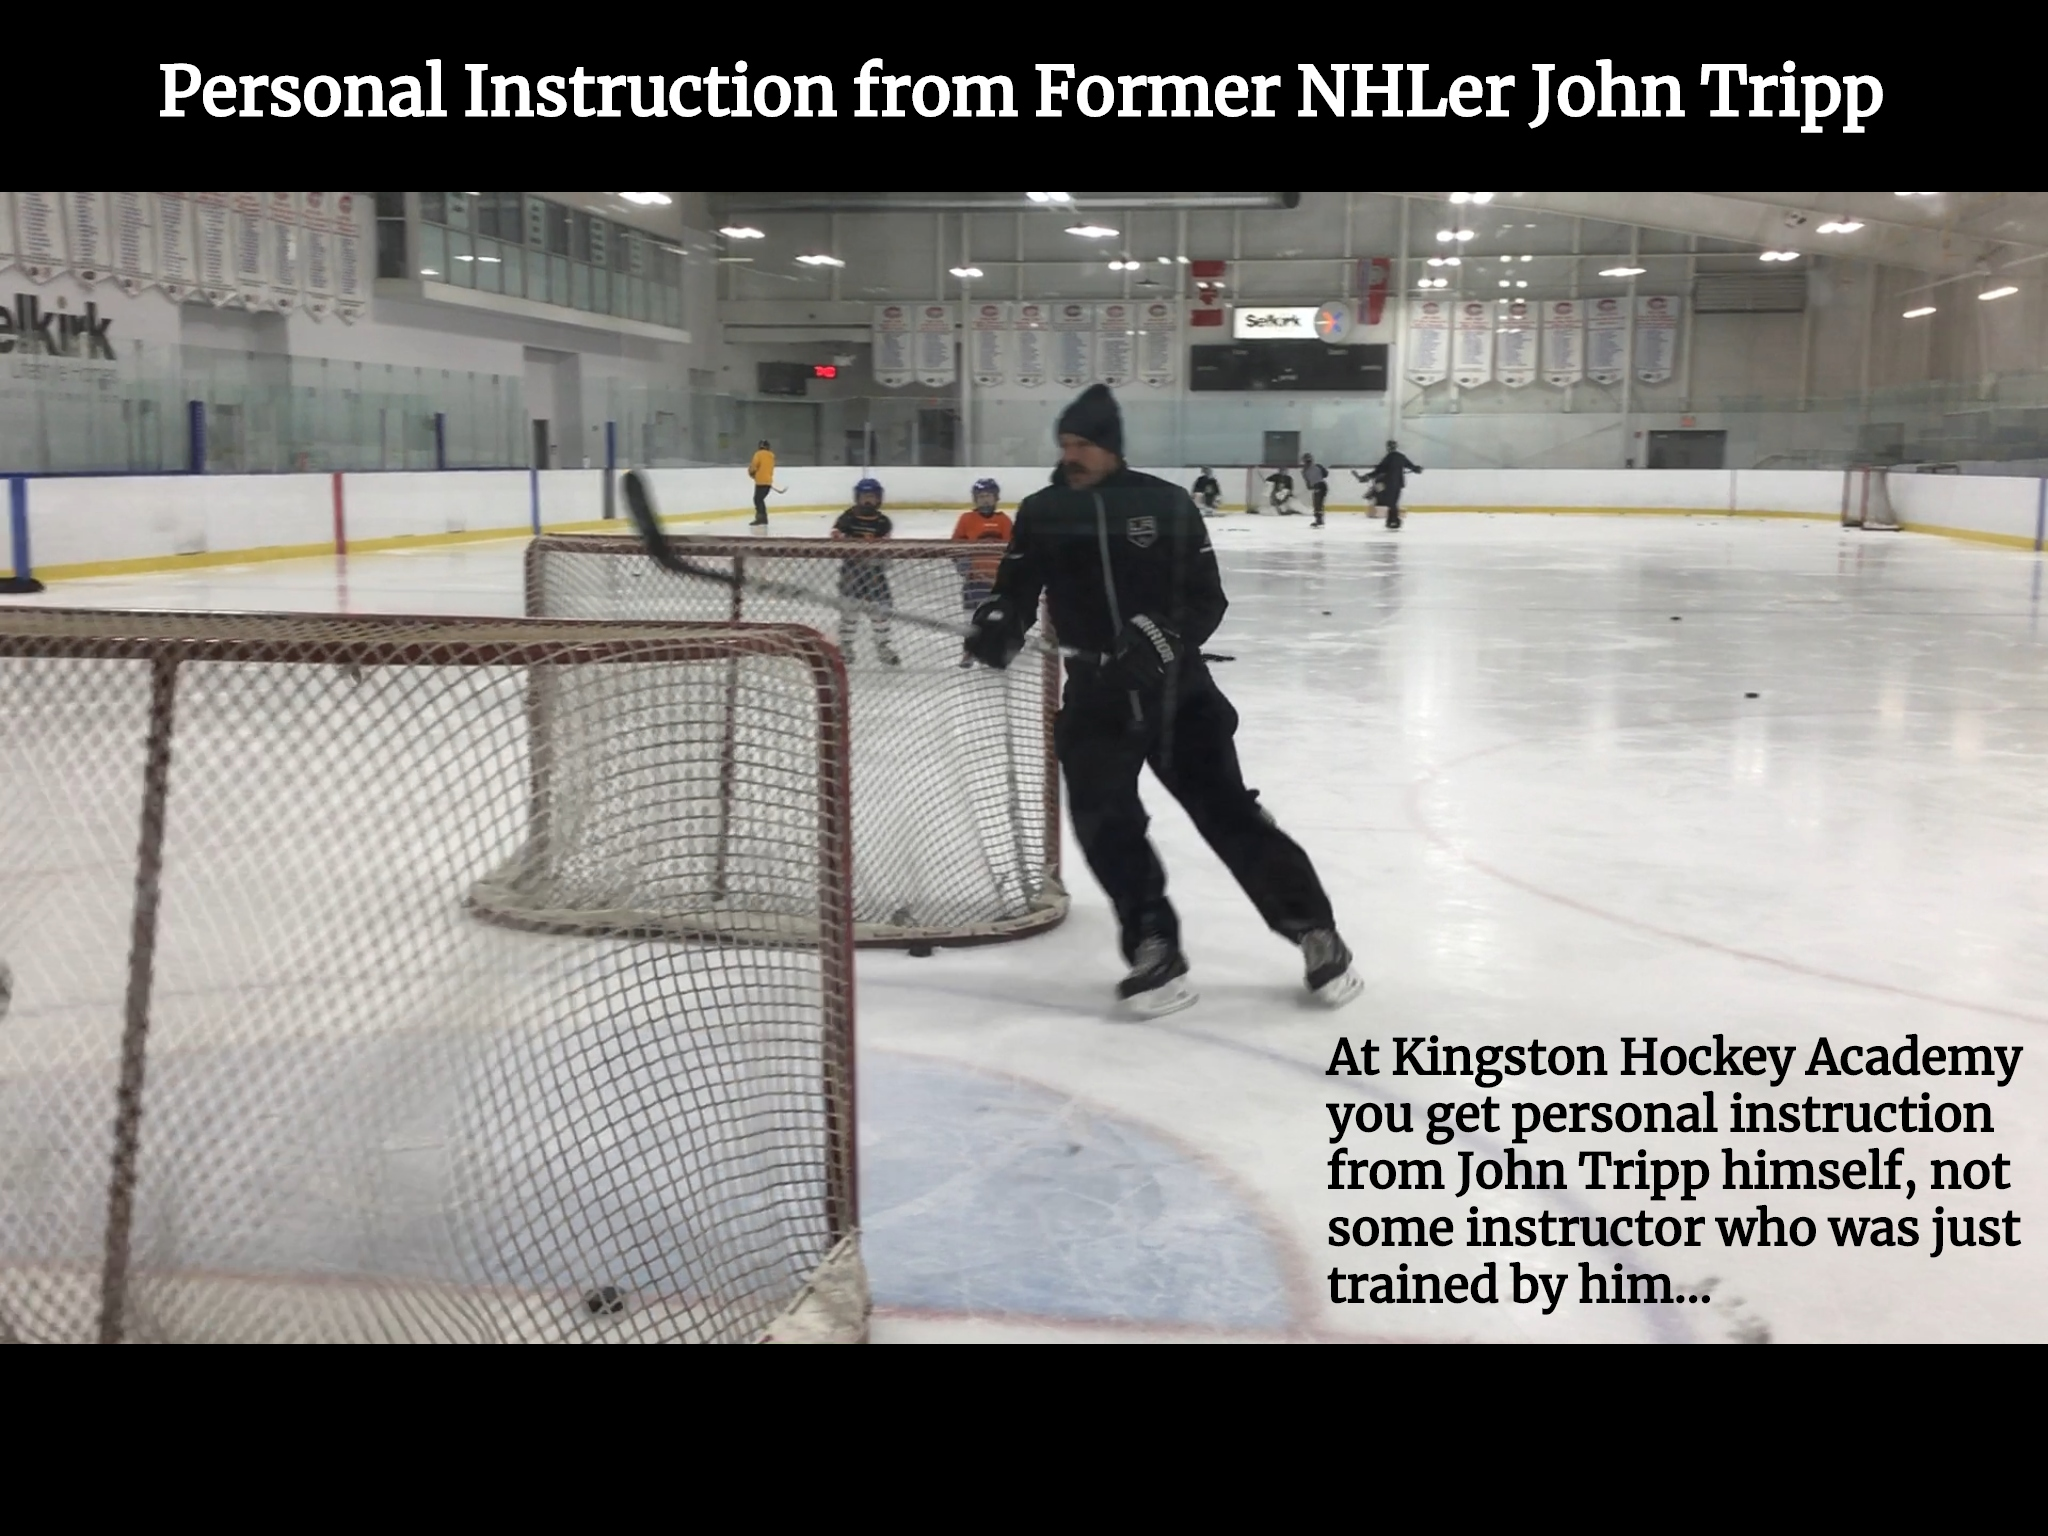 Personal Instruction from John Tripp